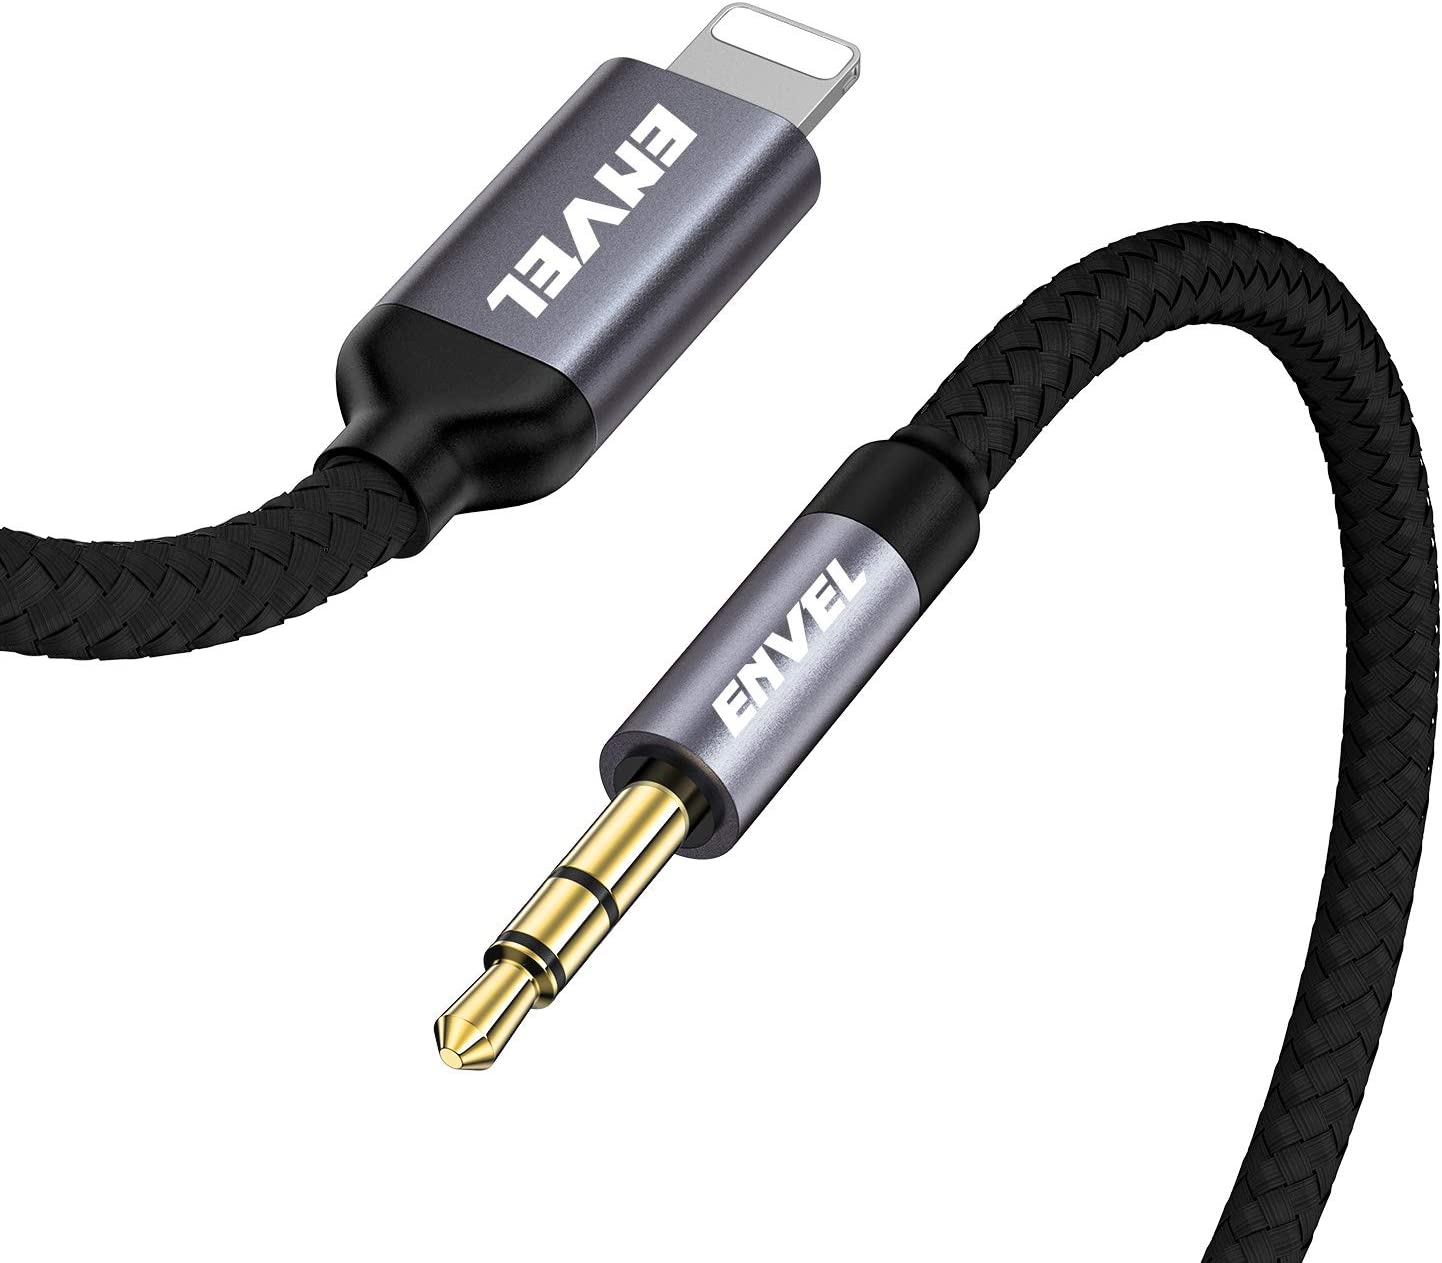 Aux Cable for Car 3.5mm Aux Cord Compatible with Phone XR//XS//XS Max//X//8//8 Plus//7 Plus 3.5mm Male Stereo Audio Cable Car Aux Cable for Car//Home Stereo or Headphones 3.3ft